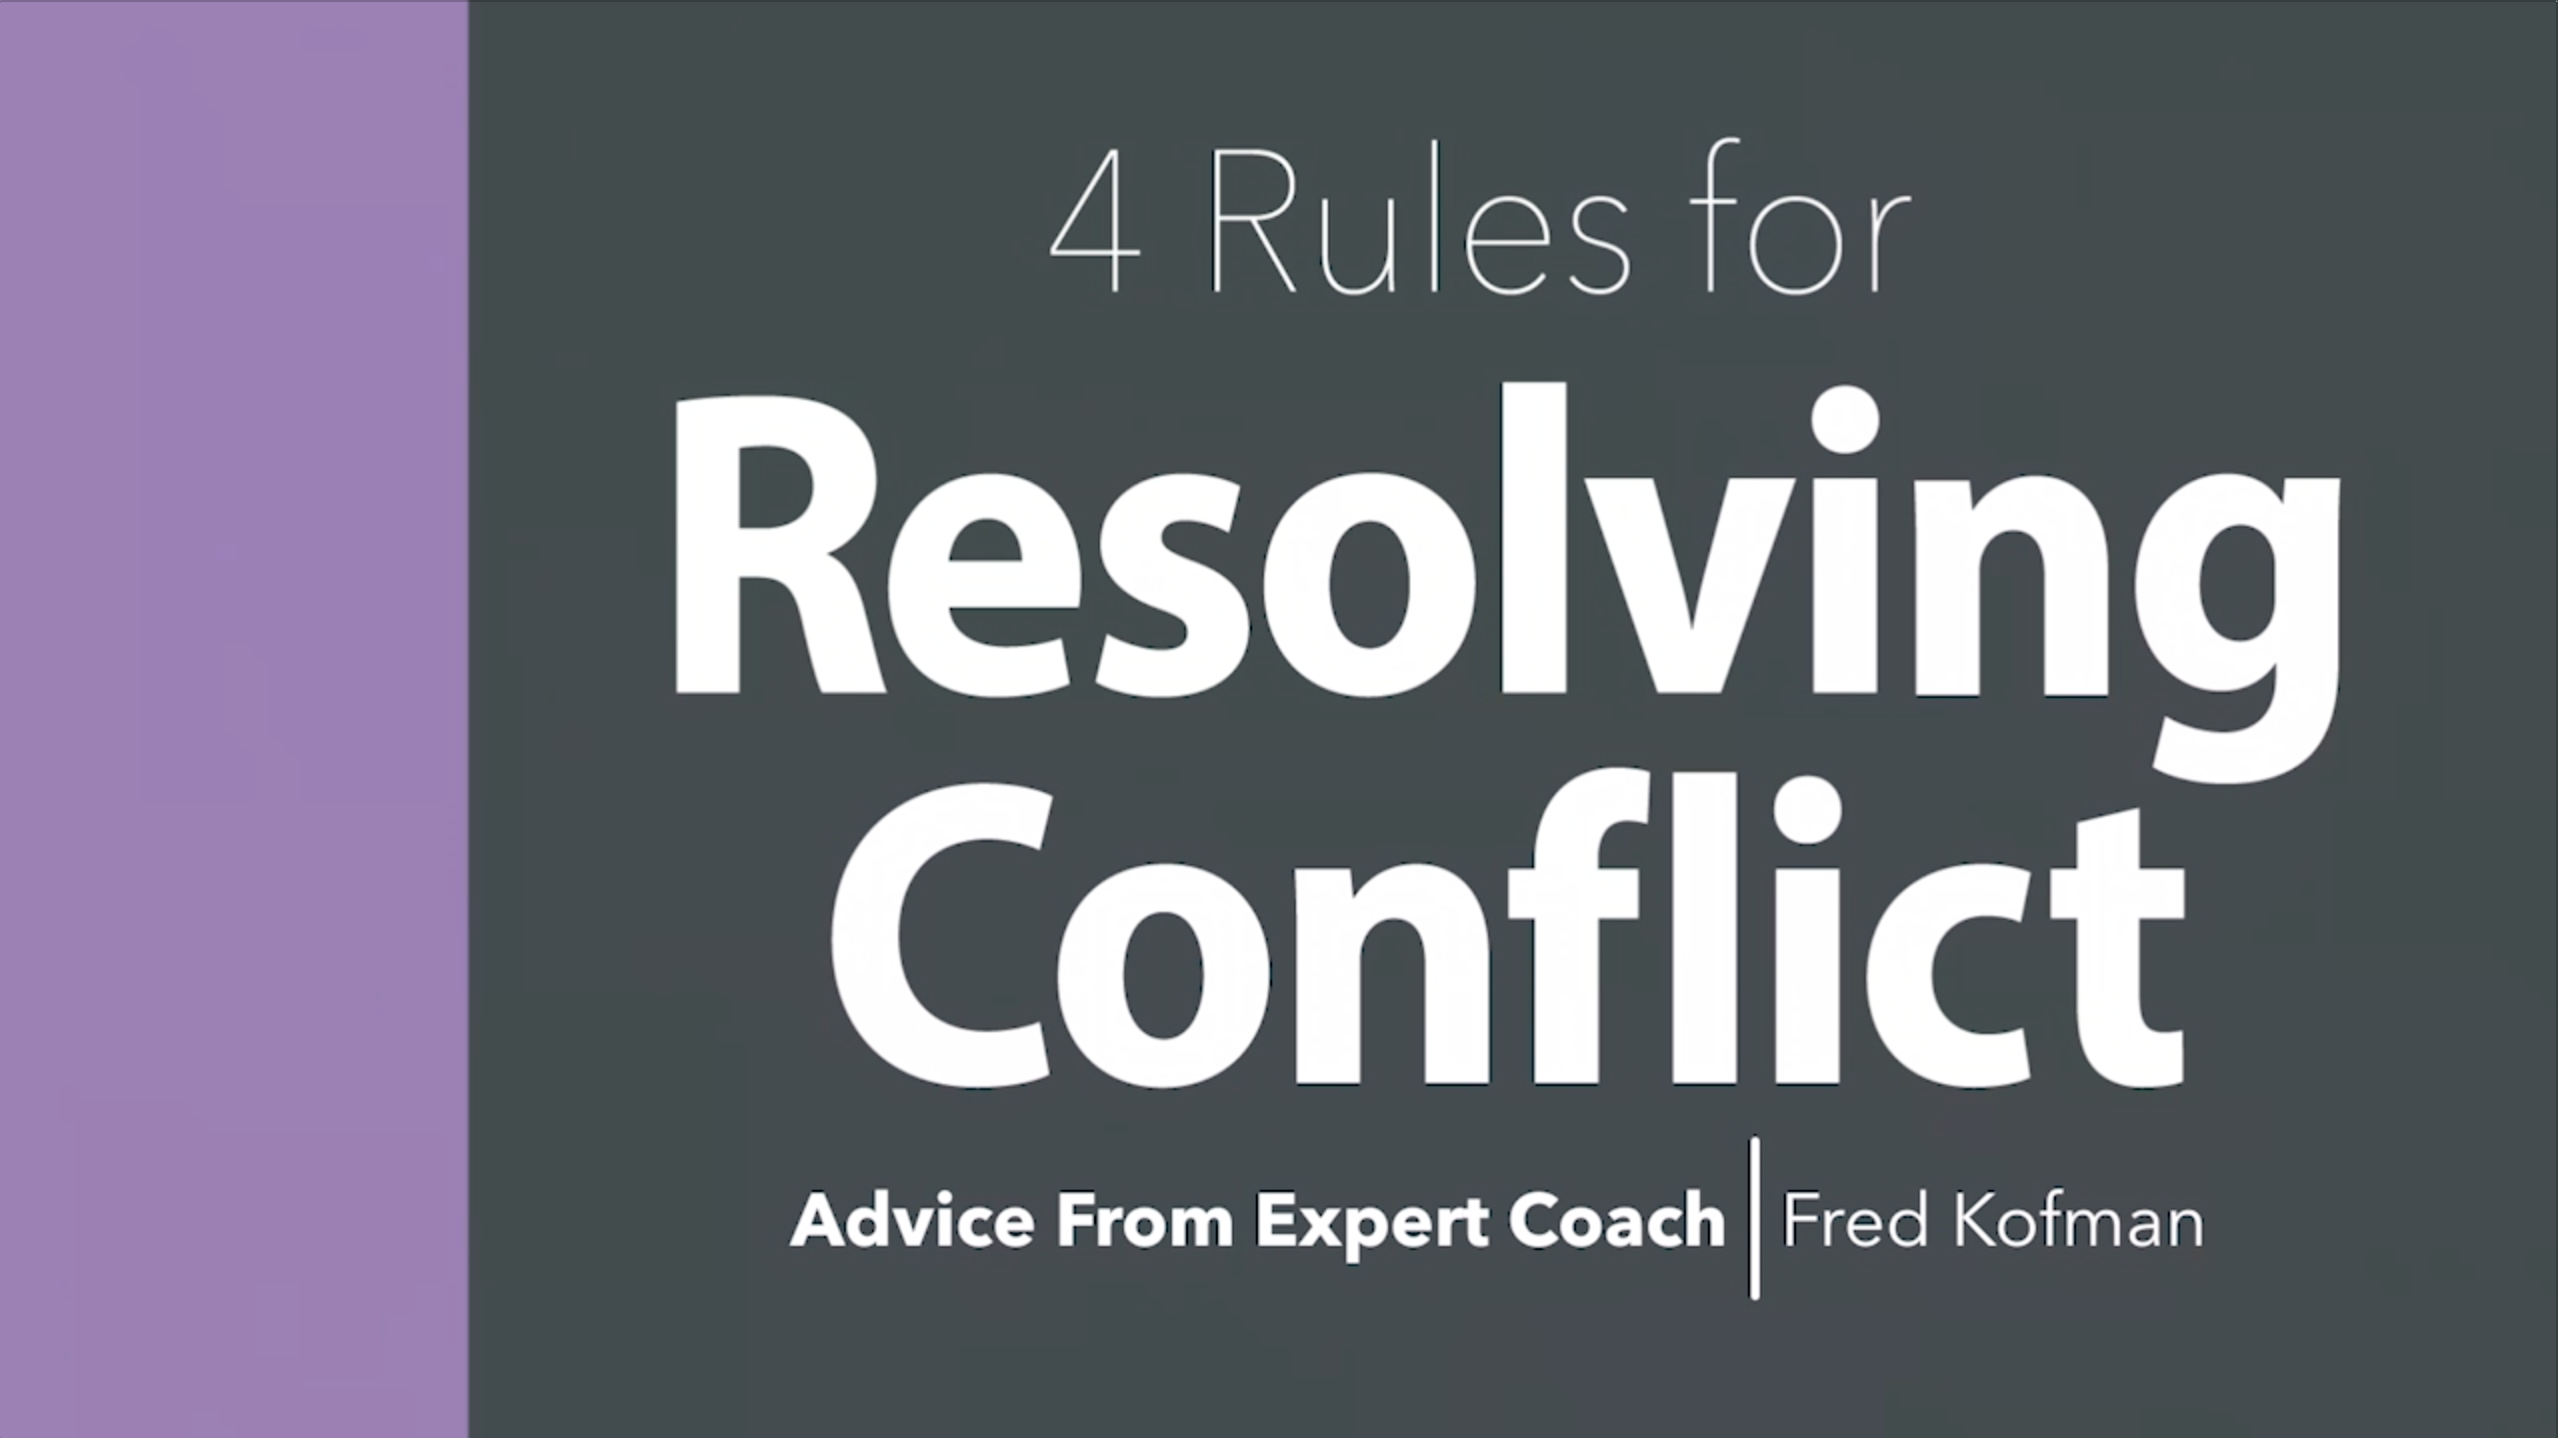 4 Rules for Resolving Conflict from Fred Kofman